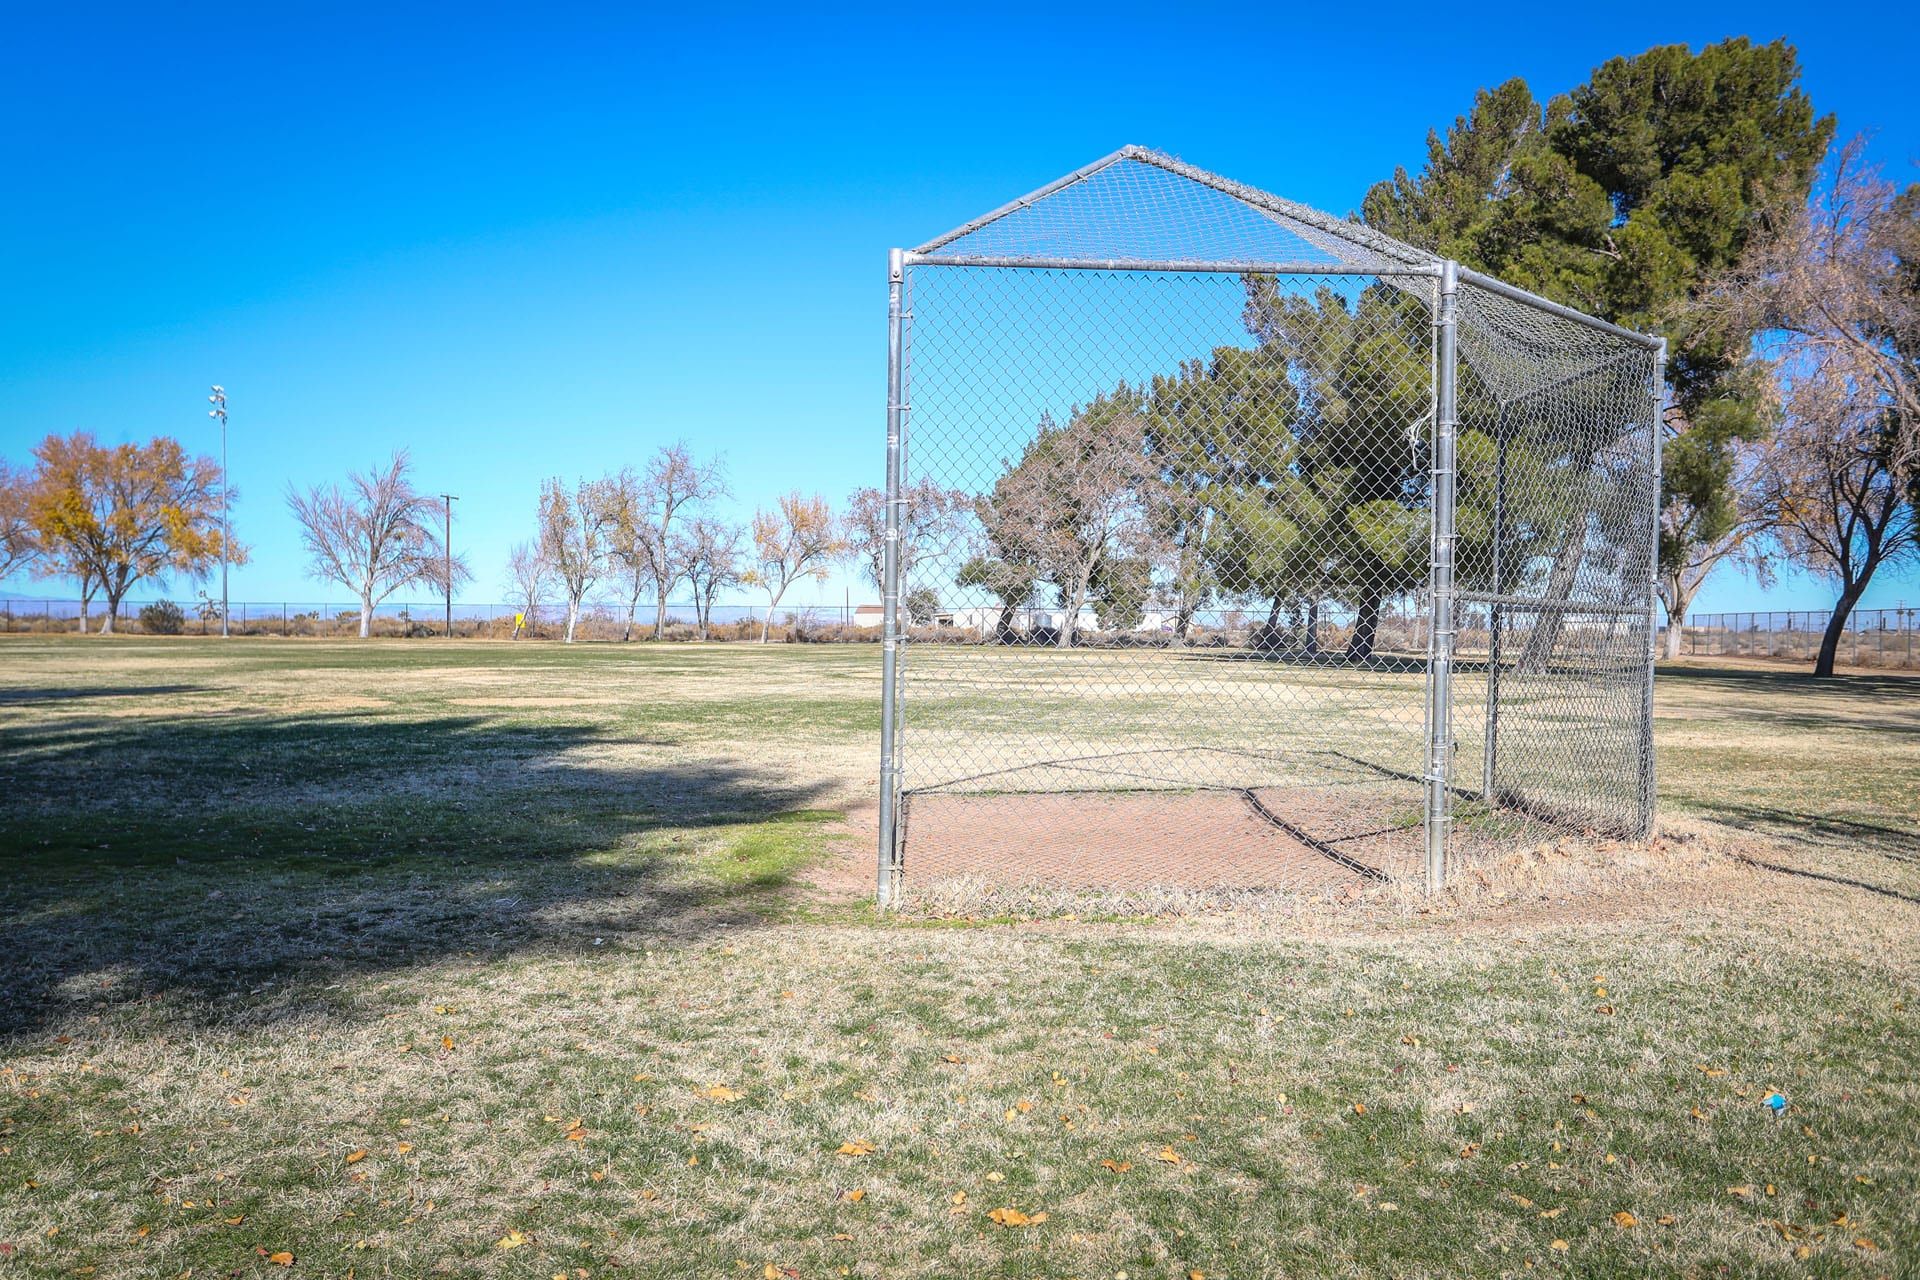 Net on baseball field